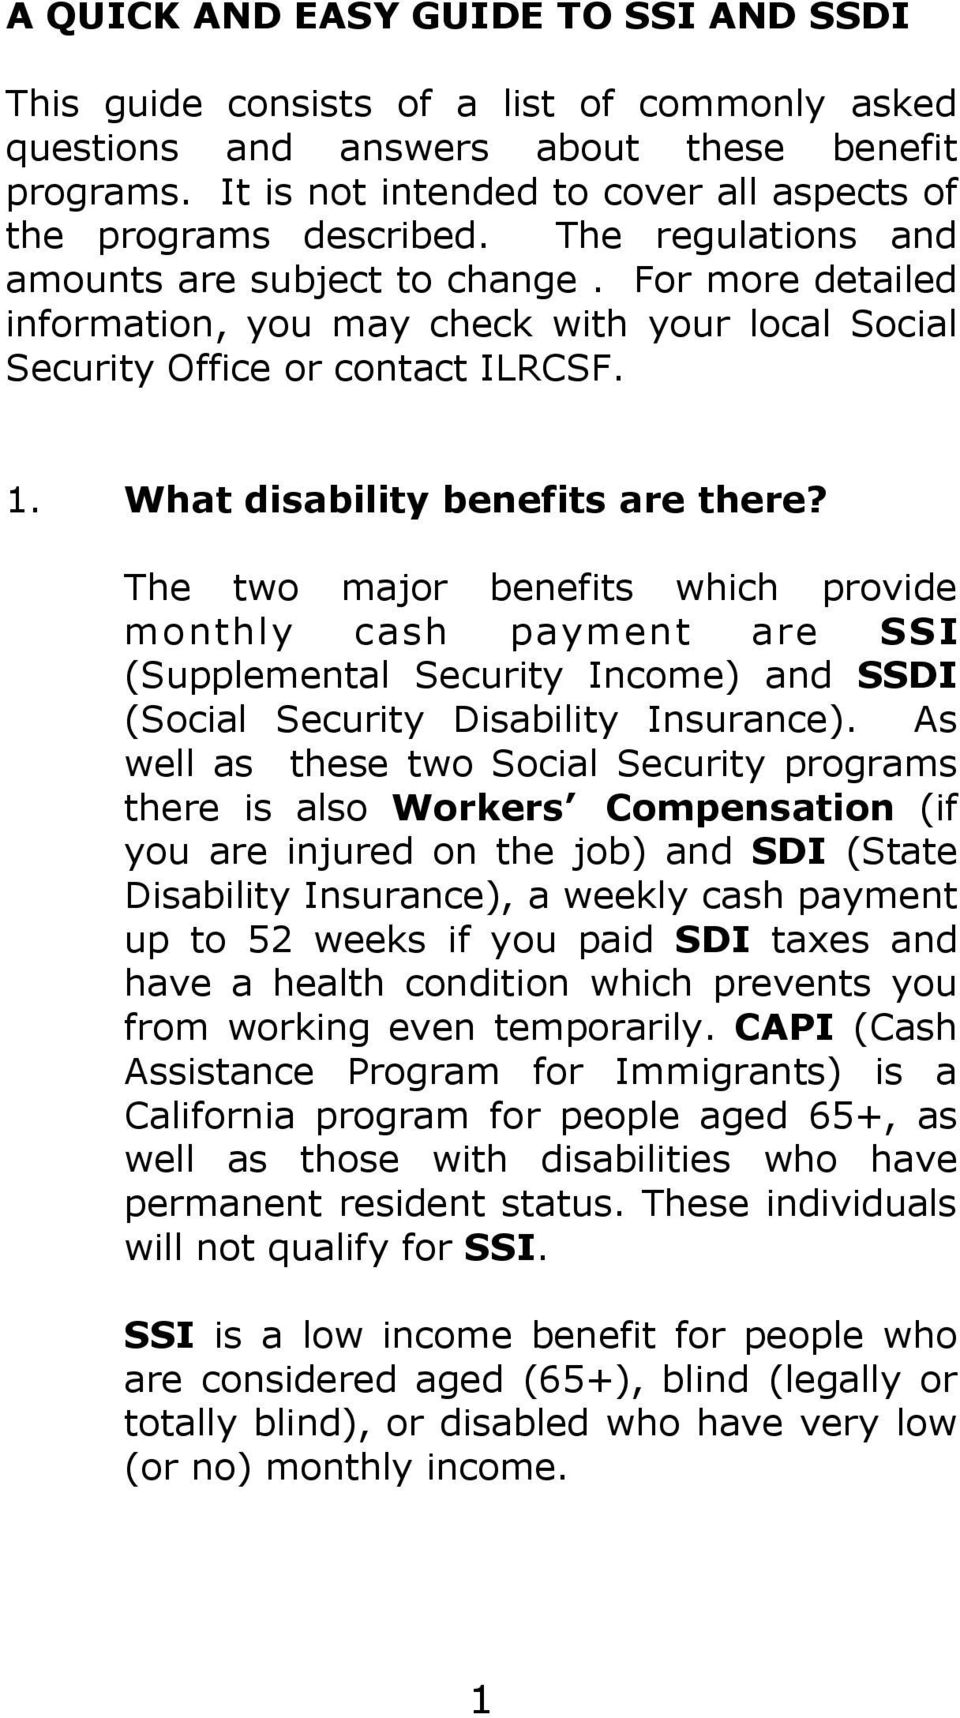 For more detailed information, you may check with your local Social Security Office or contact ILRCSF. 1. What disability benefits are there?